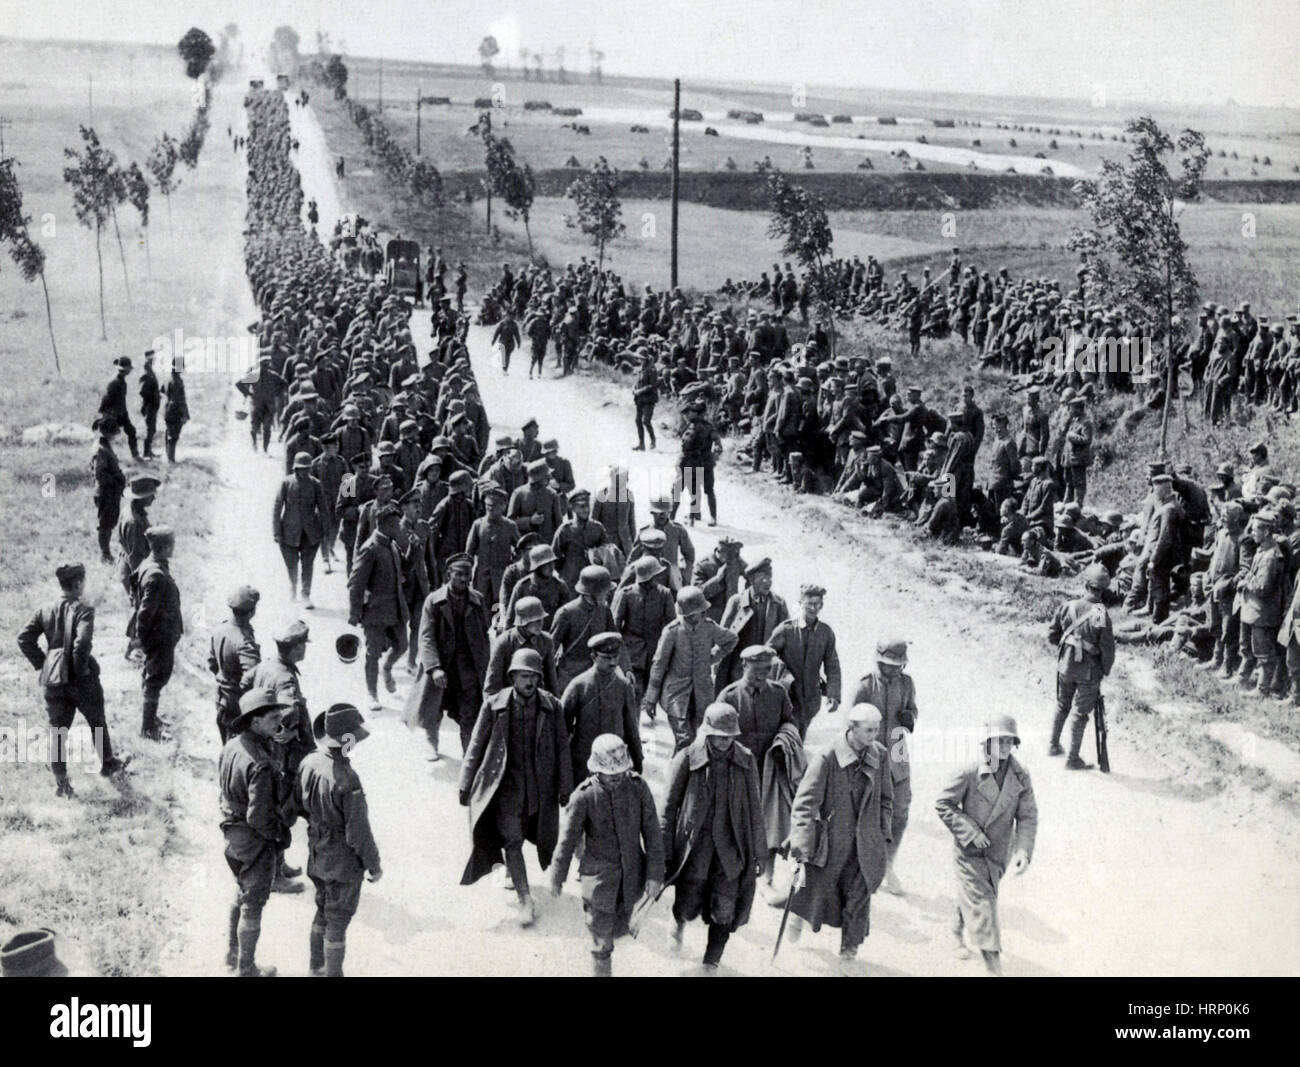 WWI, German POW's, Battle of Amiens, 1918 - Stock Image